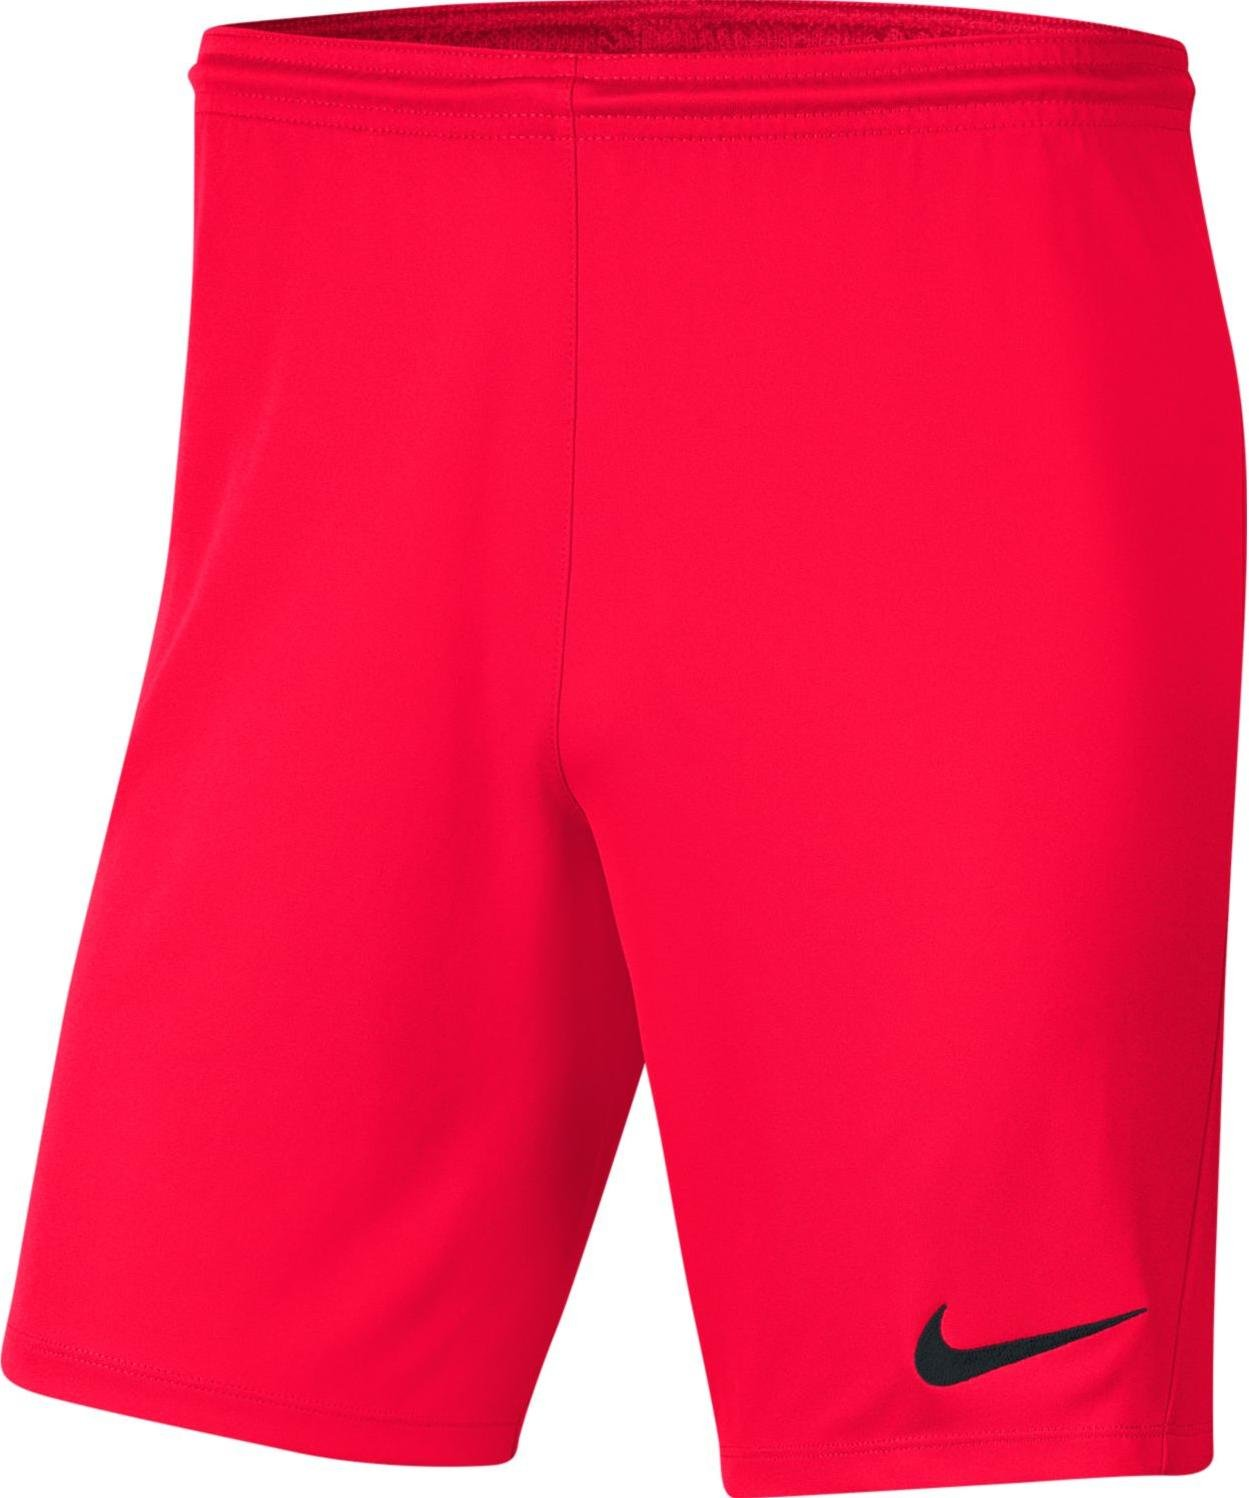 Pantalons courts Nike Y NK DRY PARK III SHORT NB K